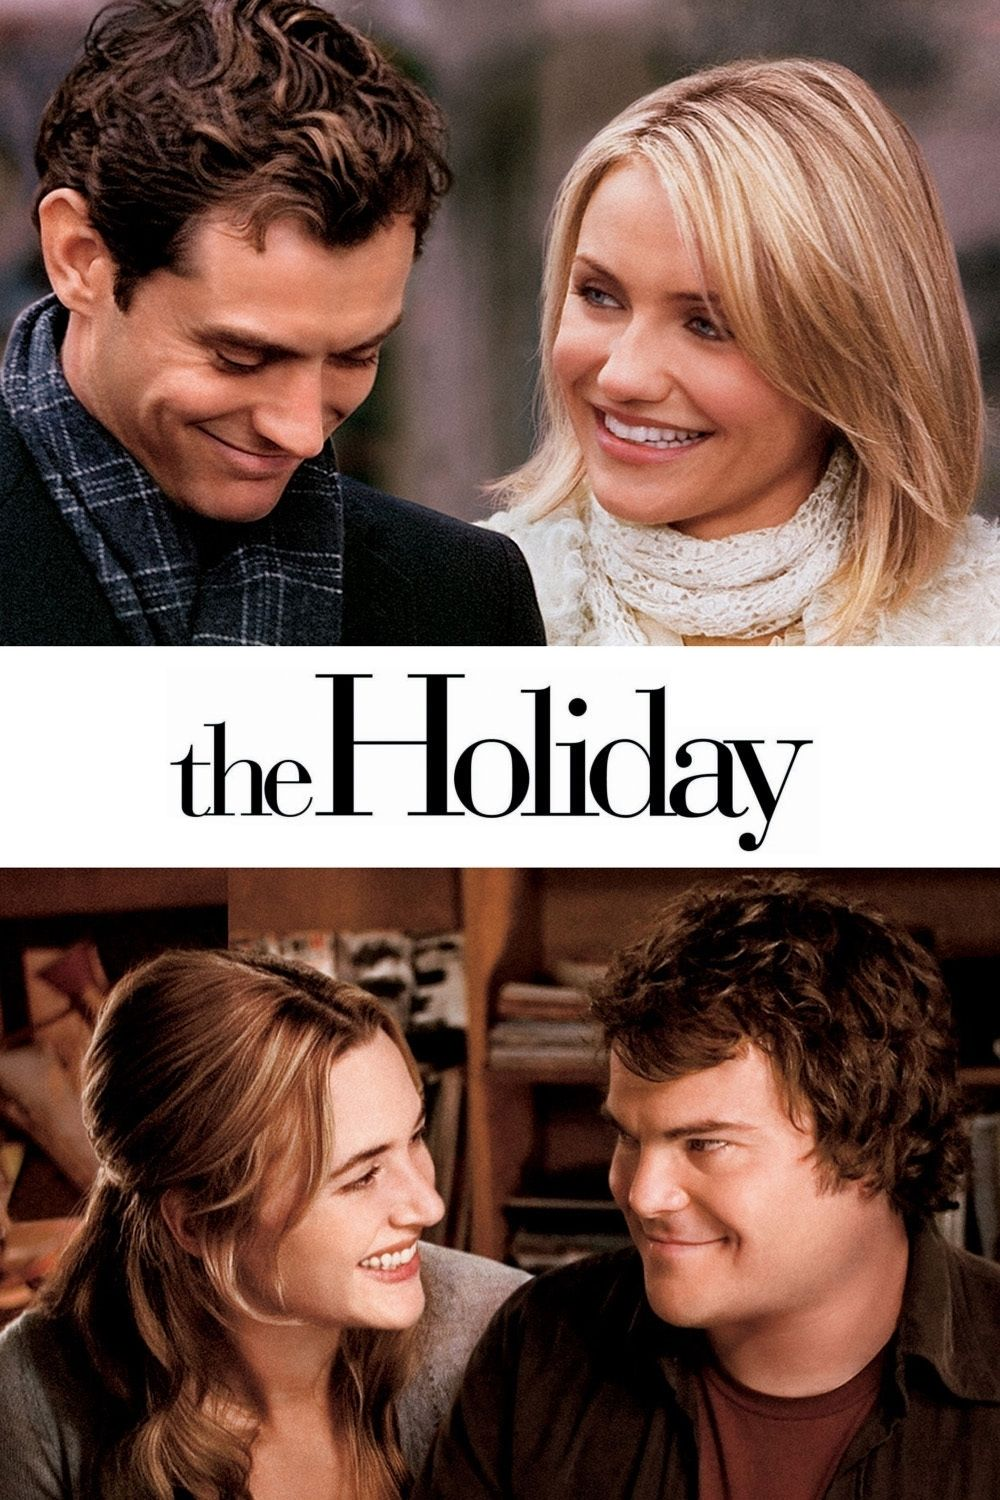 The Holiday (2006) dir. Nancy Meyers Streaming movies